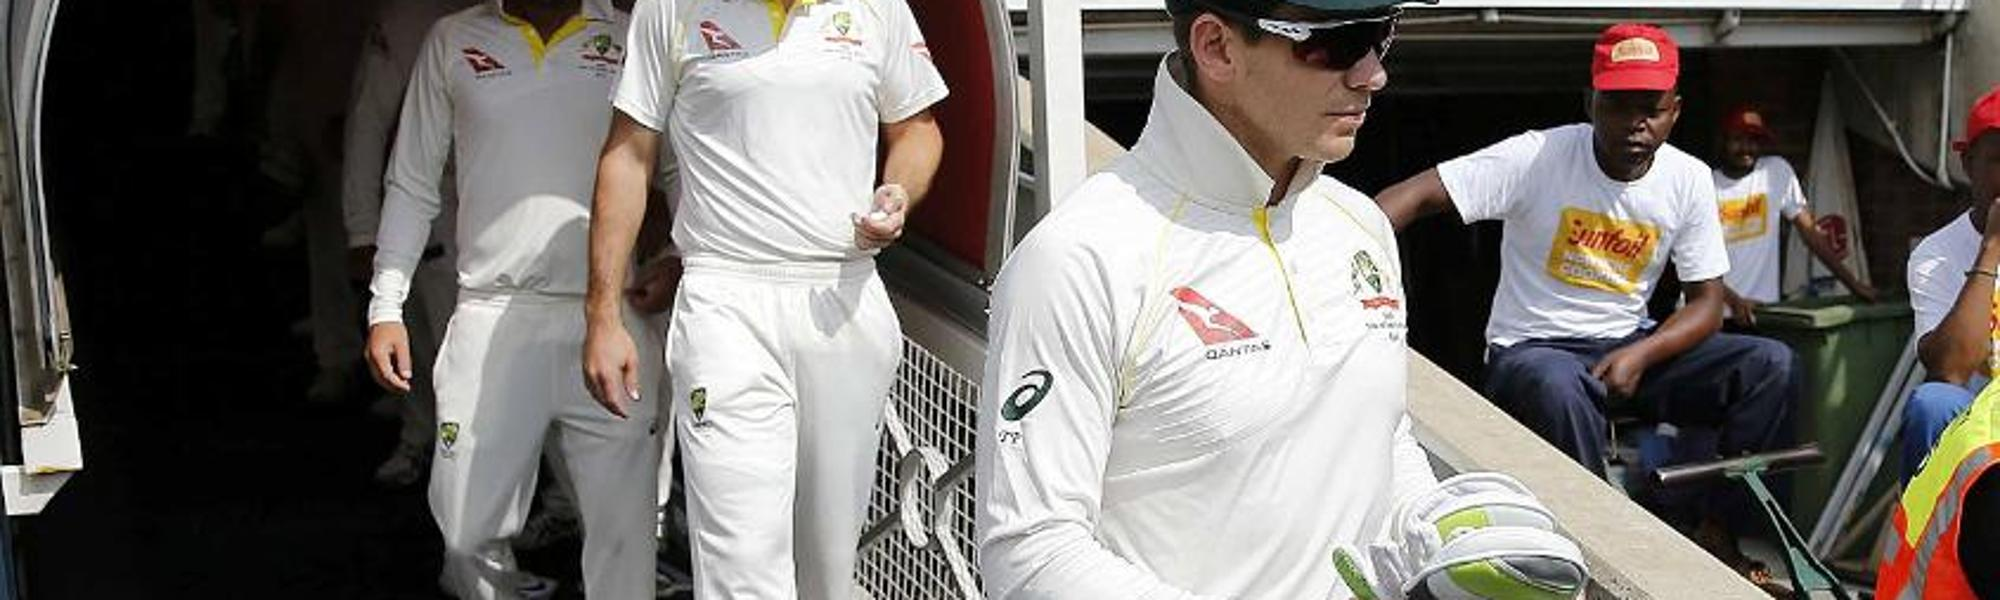 Tim Paine's first week as Test captain has been extraordinarily difficult